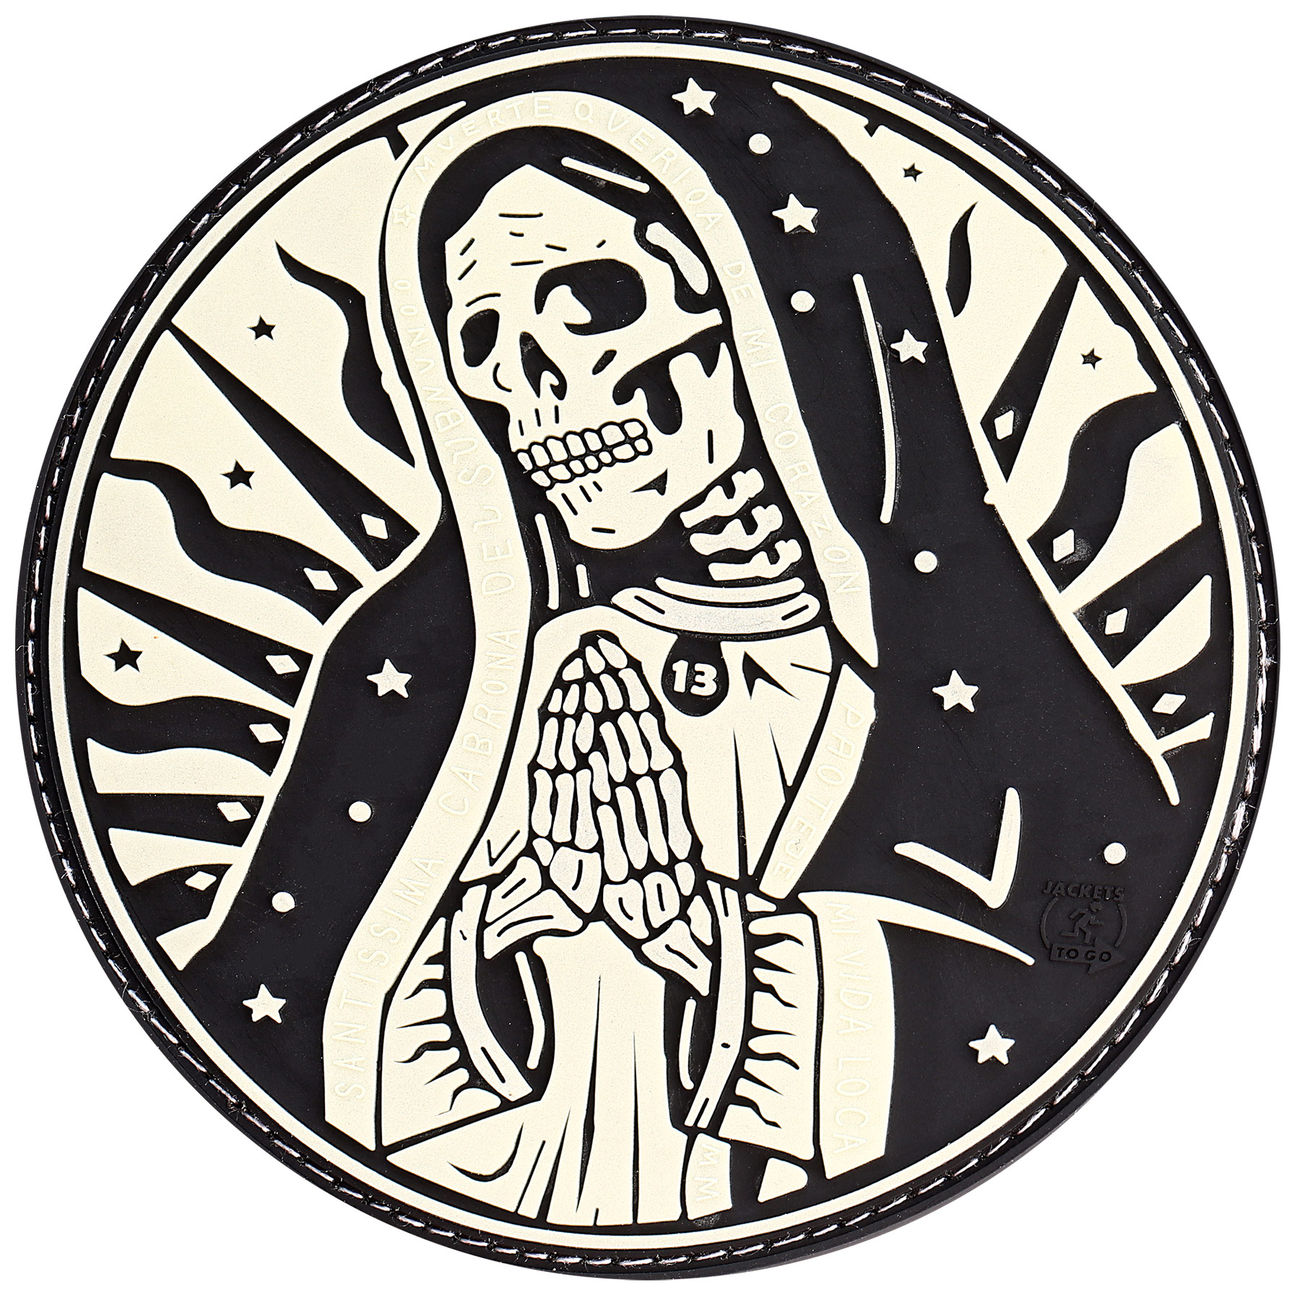 JTG 3D Rubber Patch Santa Muerte Patch nachleuchtend 0